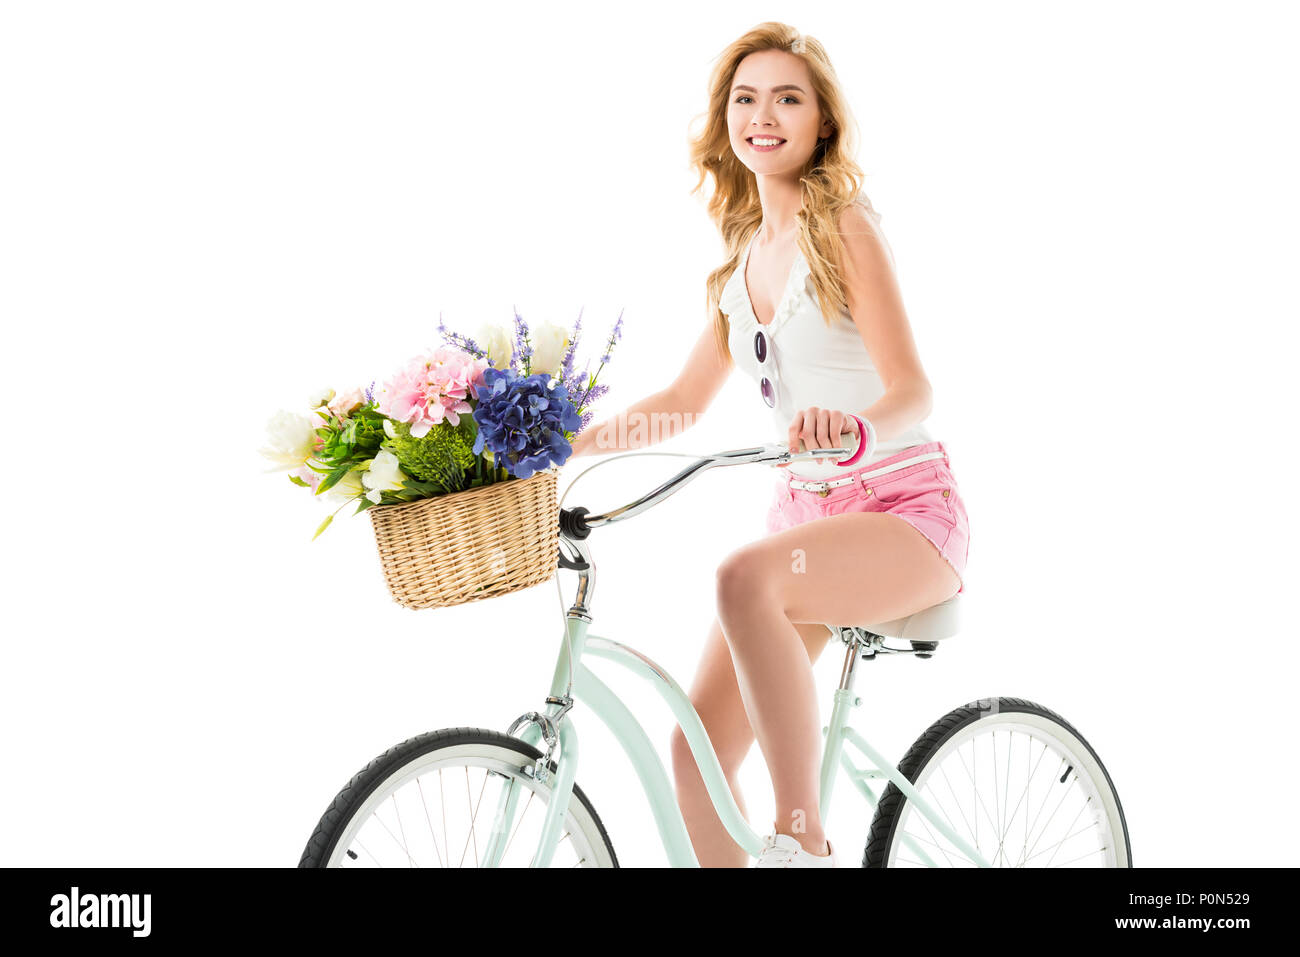 Attractive young woman riding bicycle with flowers in basket isolated on white - Stock Image